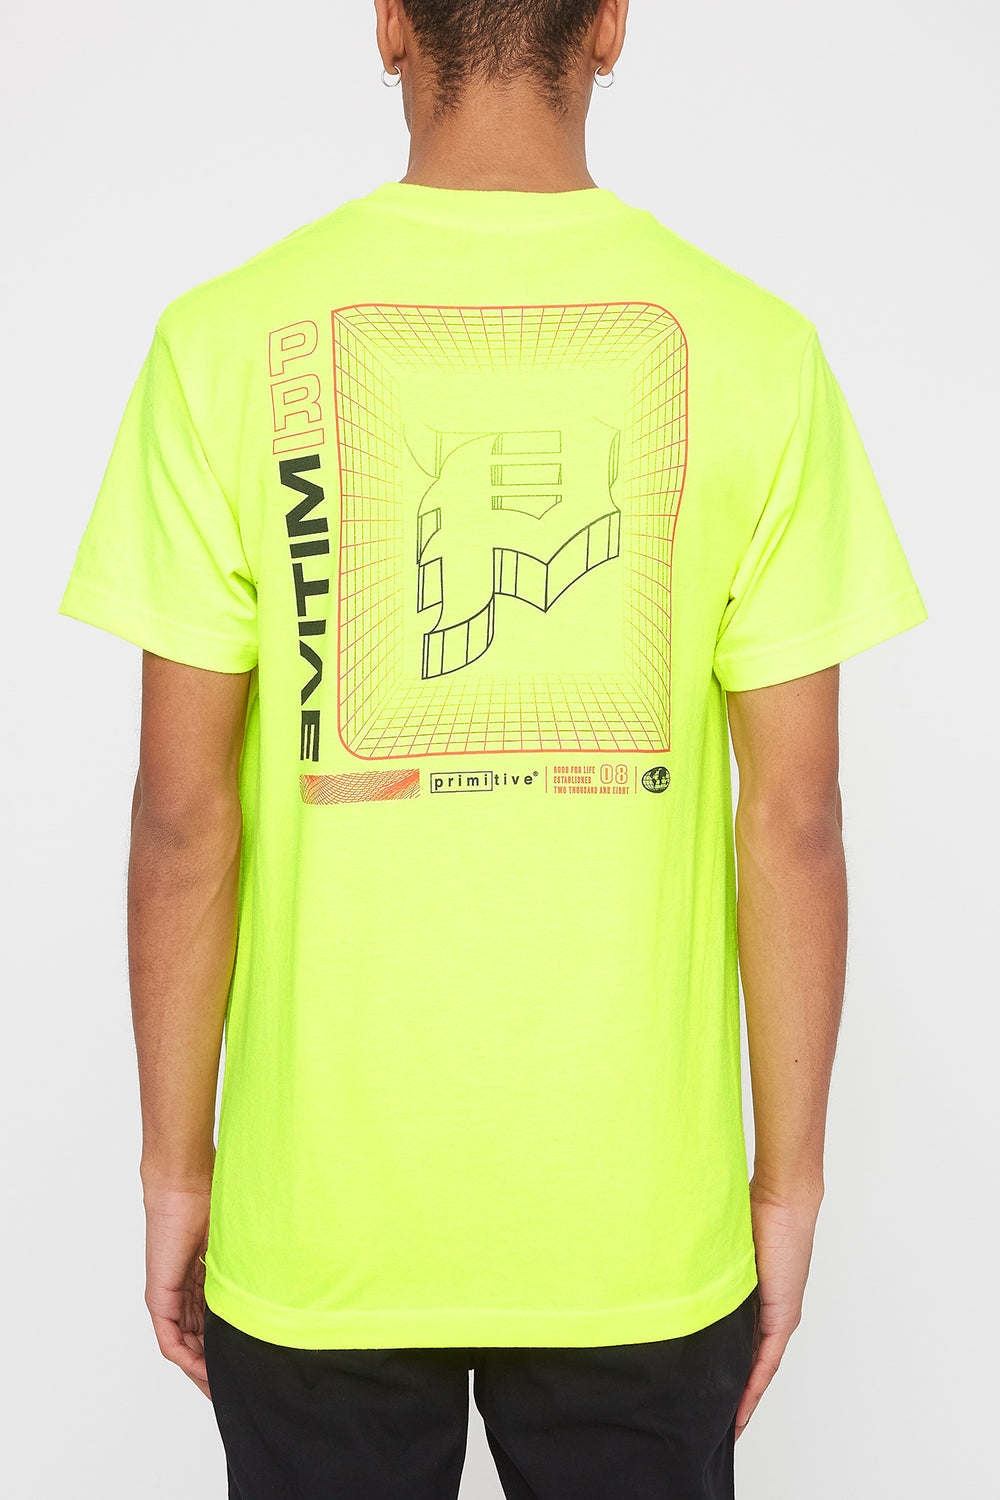 Primitive Mens Neon T-Shirt Yellow